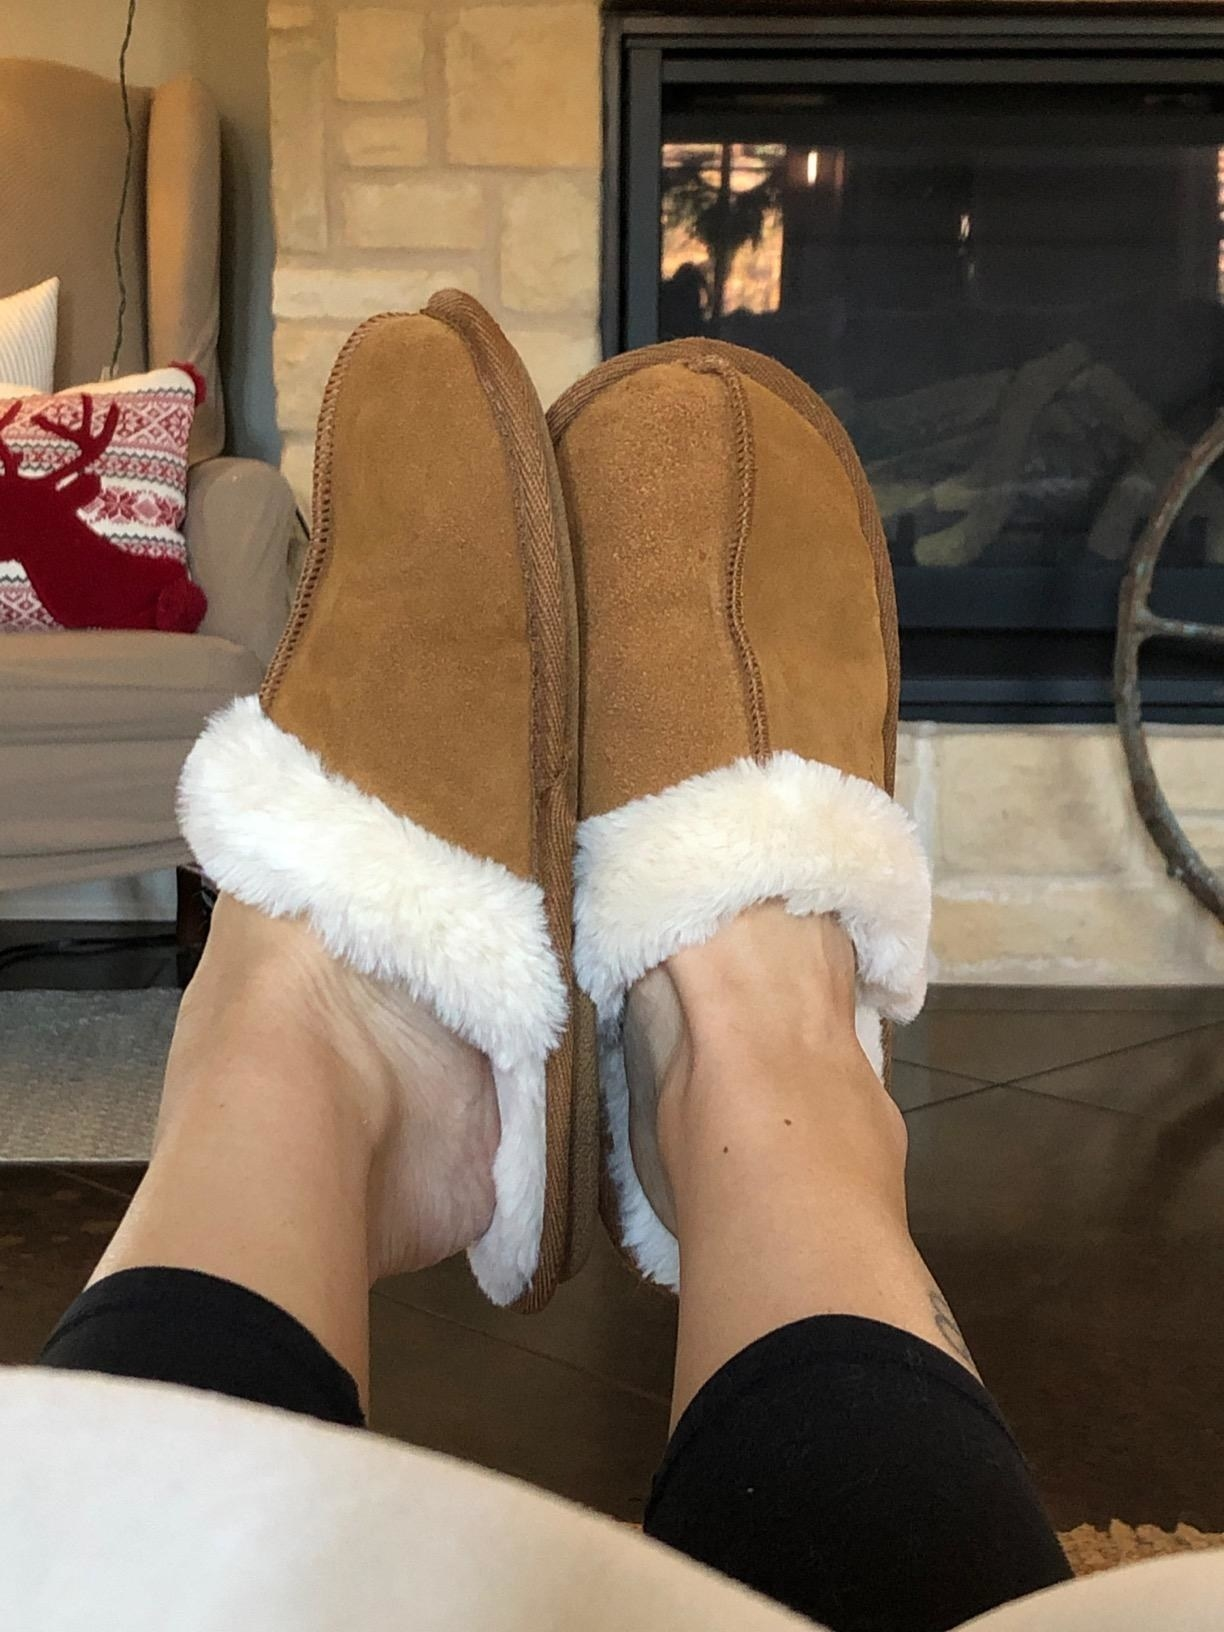 A reviewer wearing the brown slippers which are lined with fur